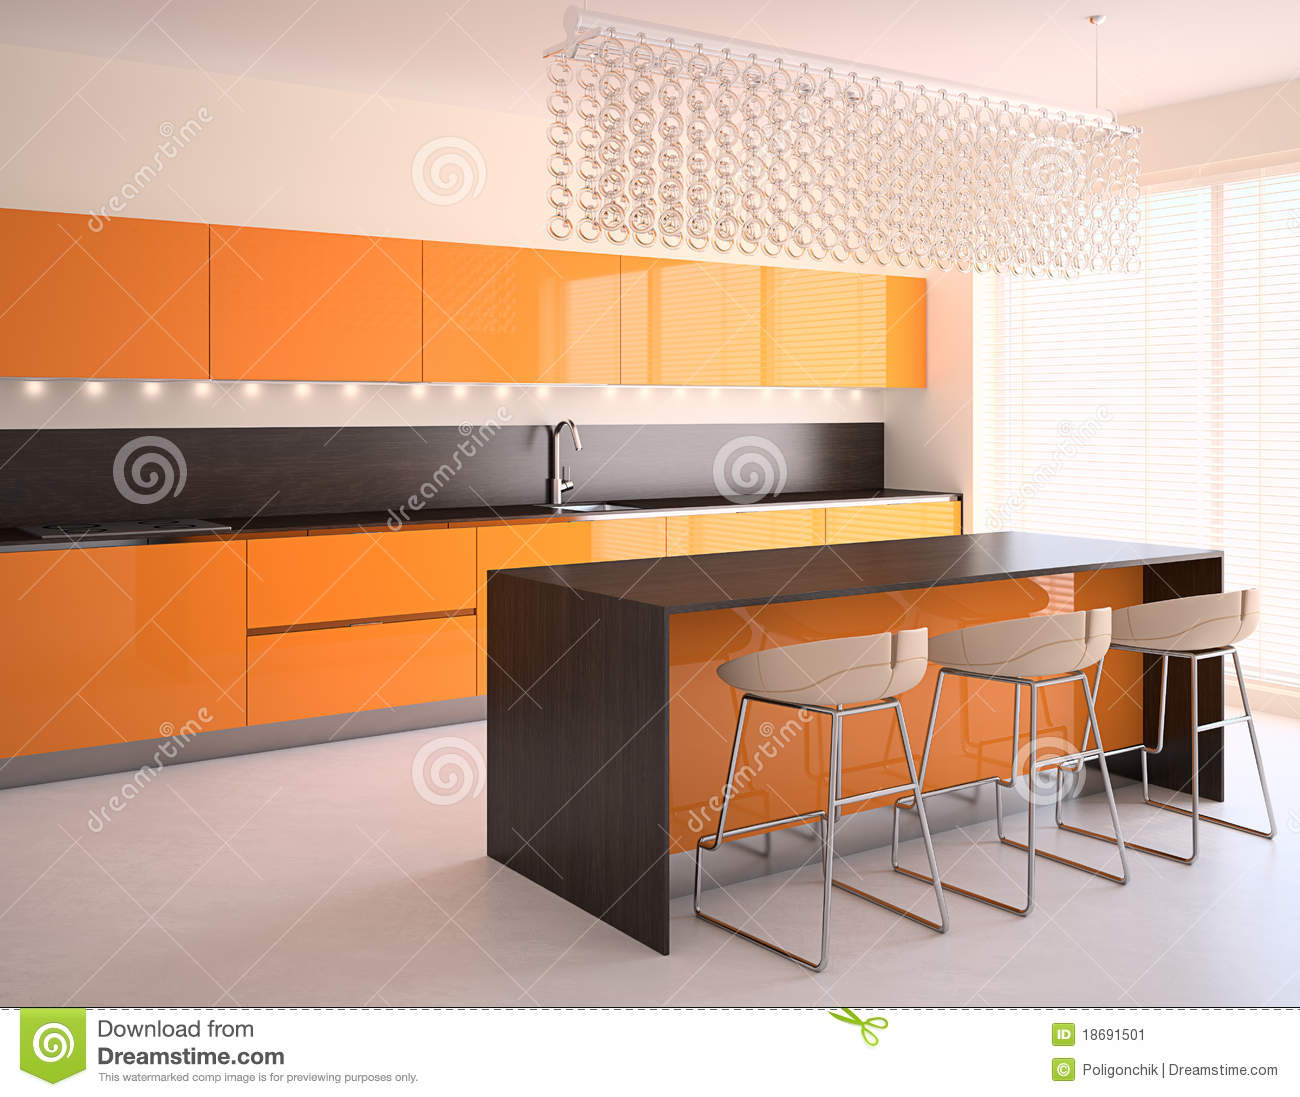 Cuisine orange moderne illustration stock illustration du for Cuisine orange